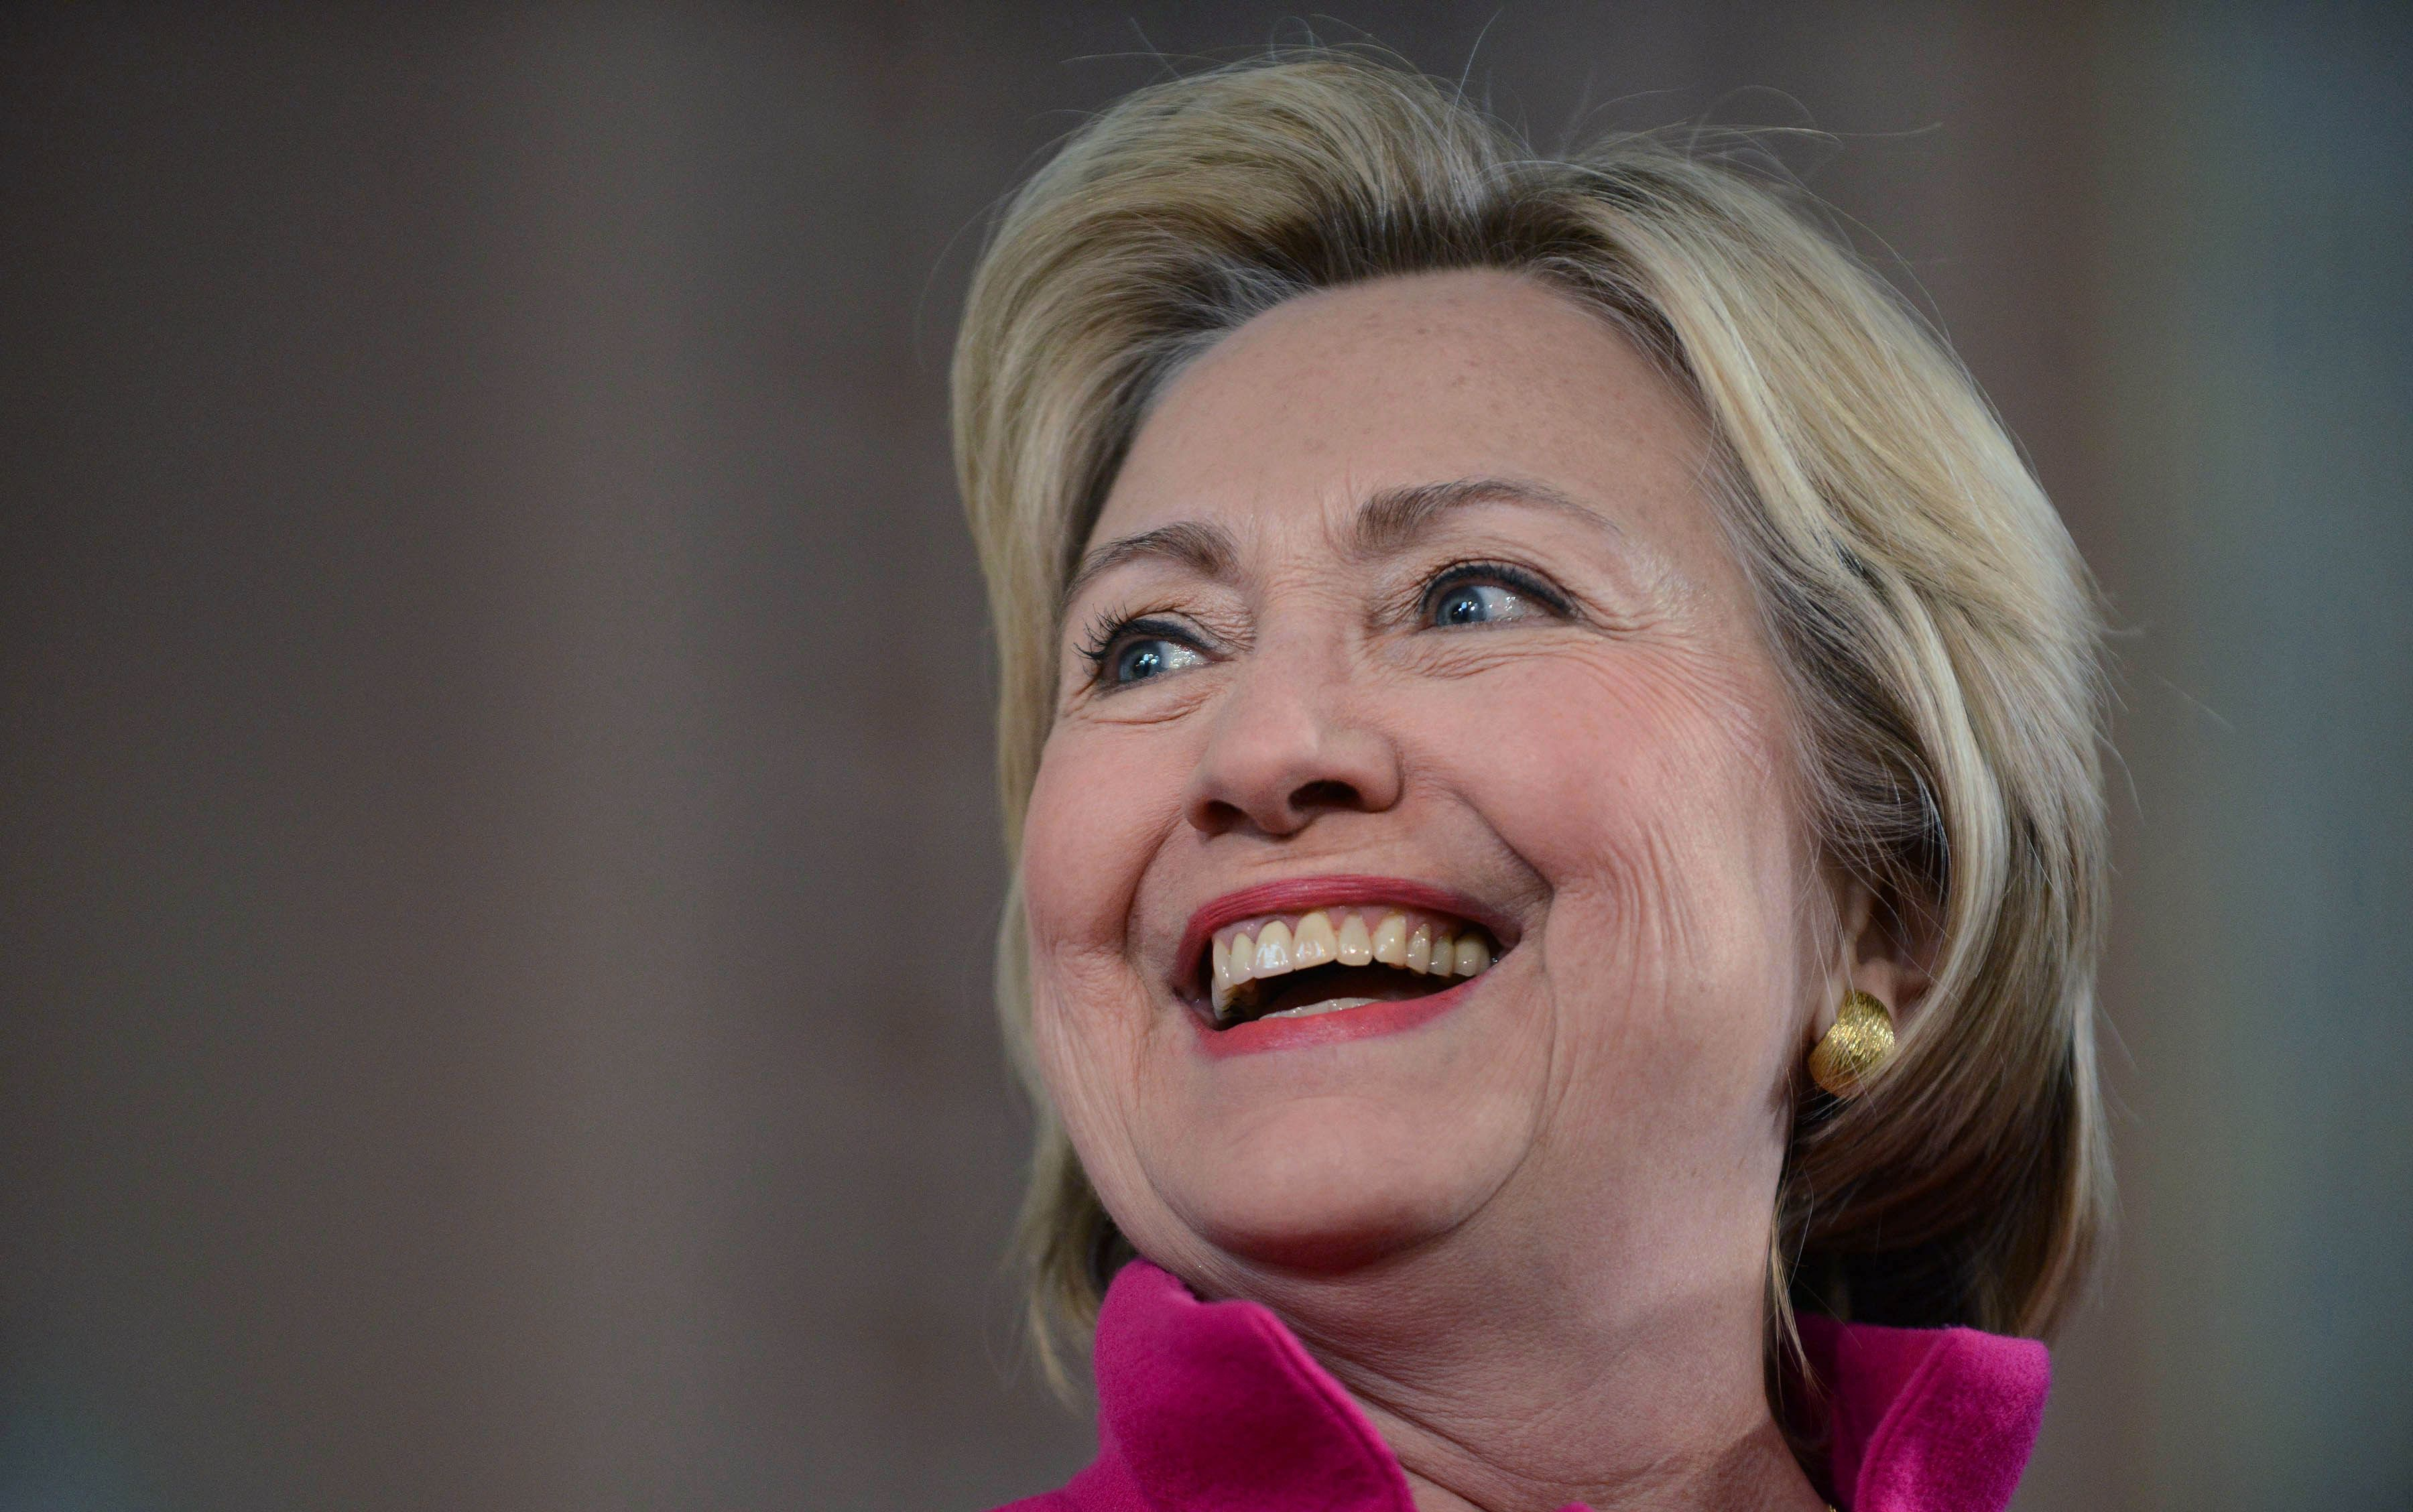 What to expect in the latest batch of Hillary Clinton's emails today